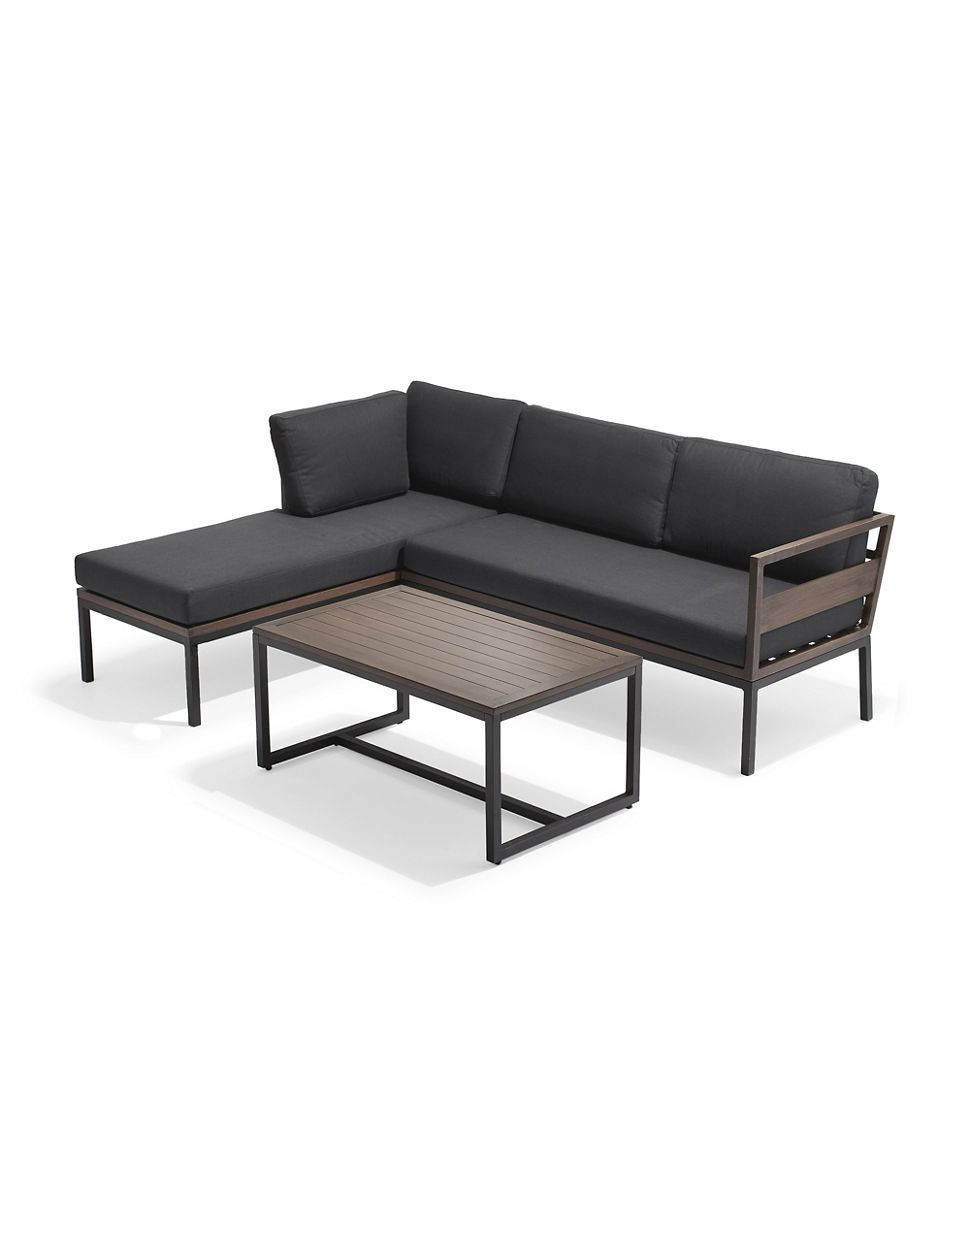 Patio Furniture | Lounge Sets | Lucca 3 Piece Conversation Set | Hudsonu0027s  Bay